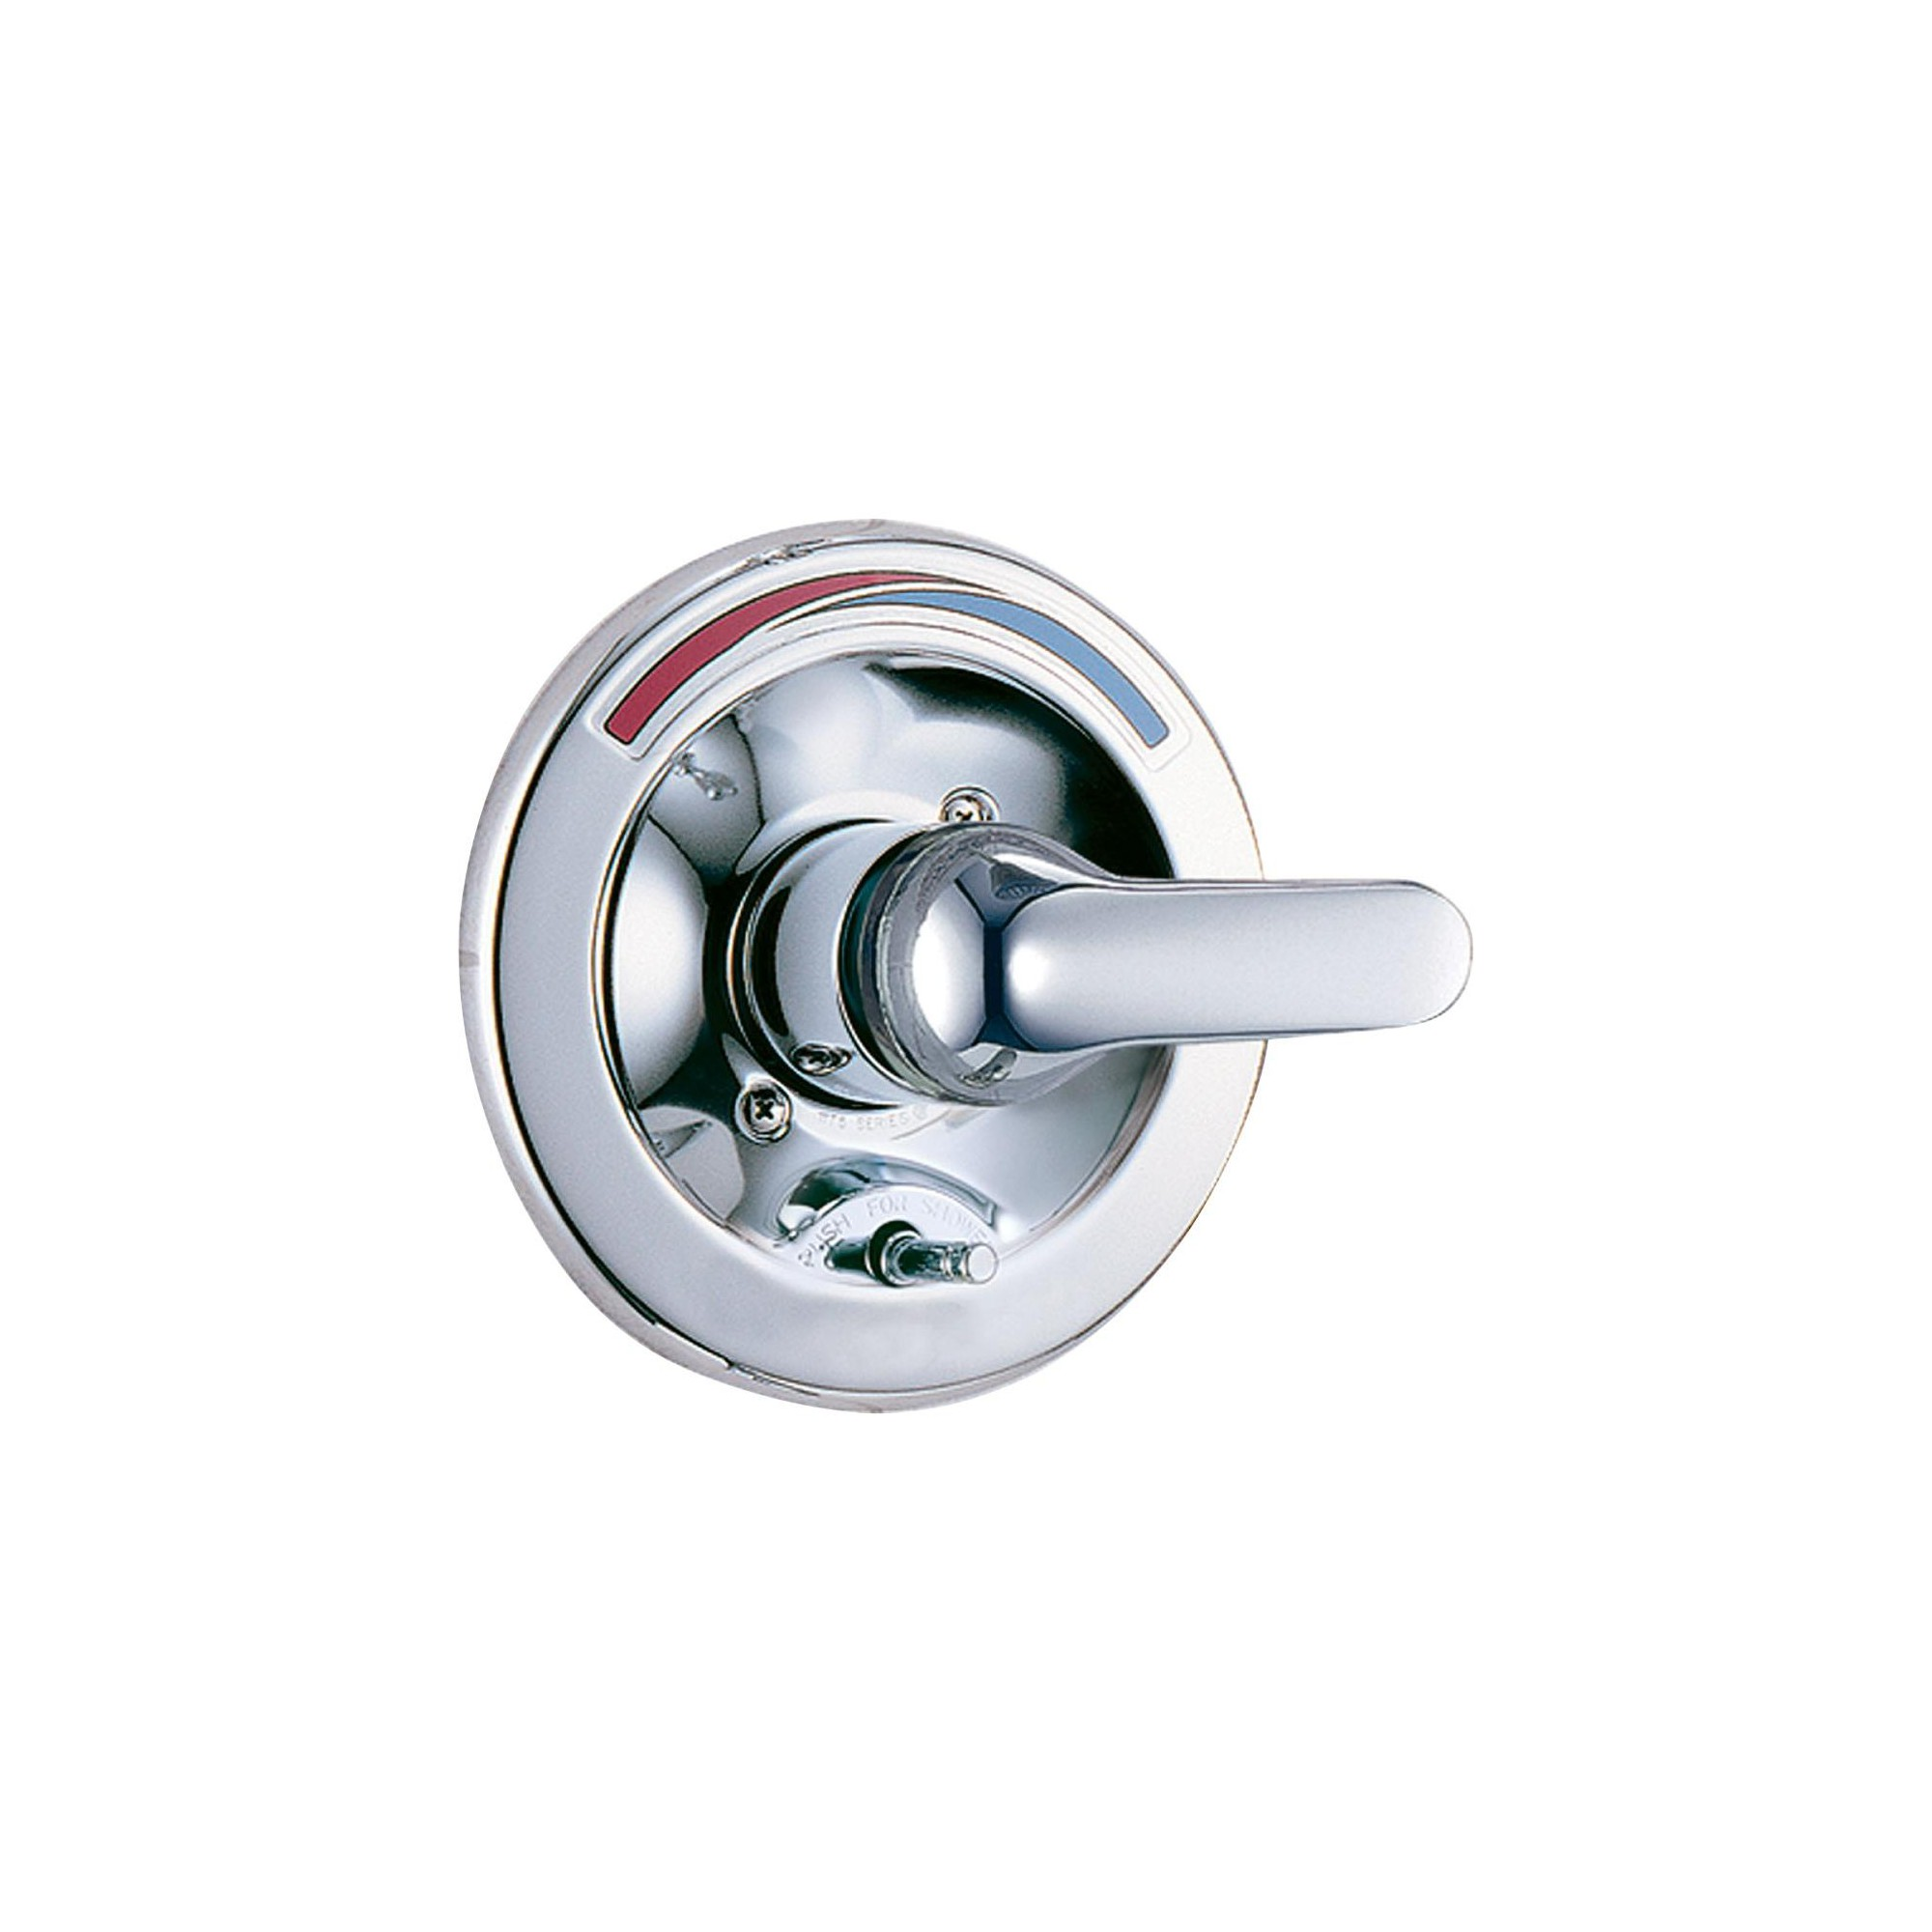 Delta Faucet T13391 Single Handle Shower Valve Trim With Push